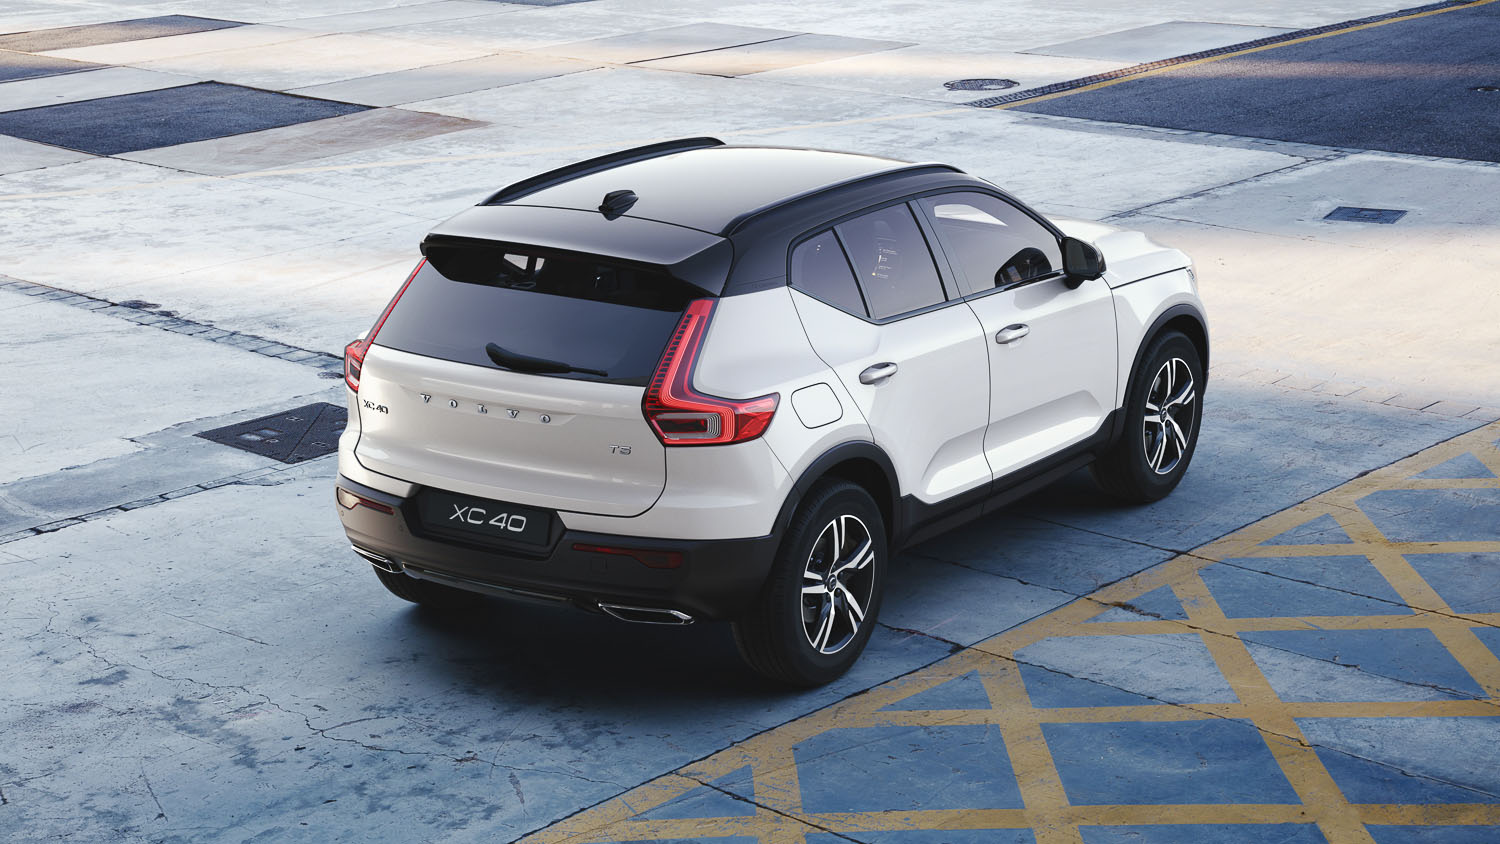 volvocars-marketing-images-driving-the-sales-of-a-brand